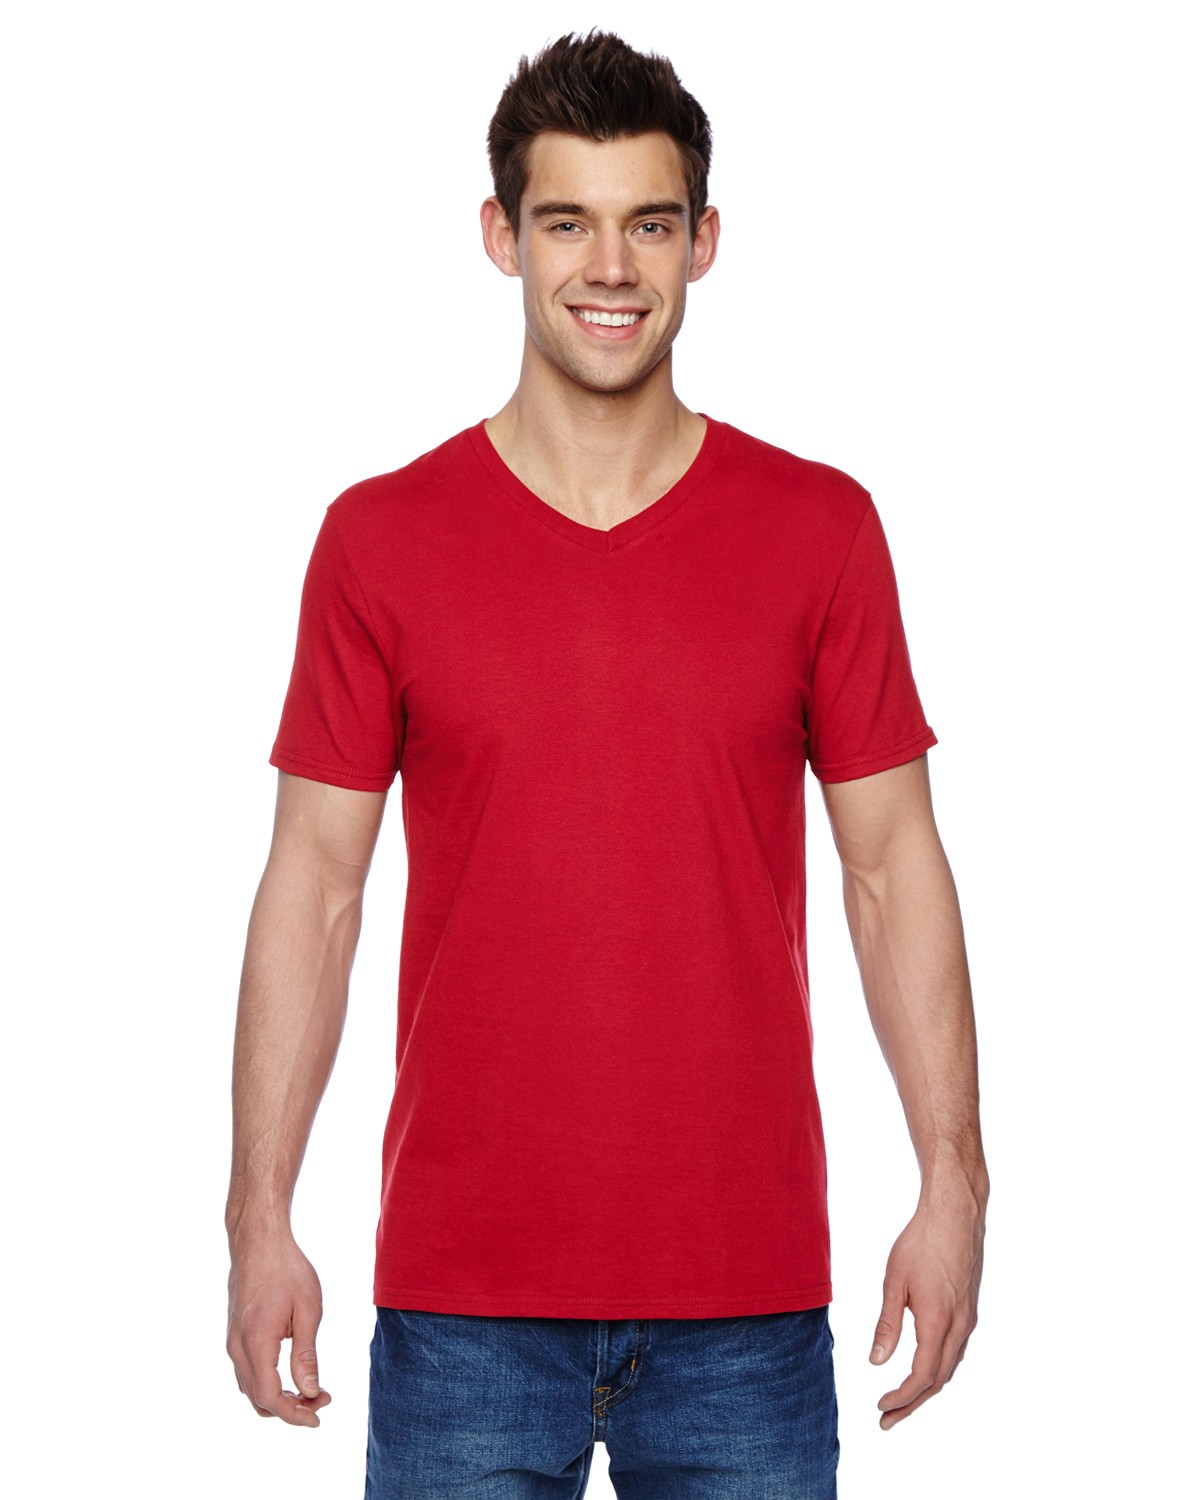 SFVR Fruit of the Loom FIERY RED